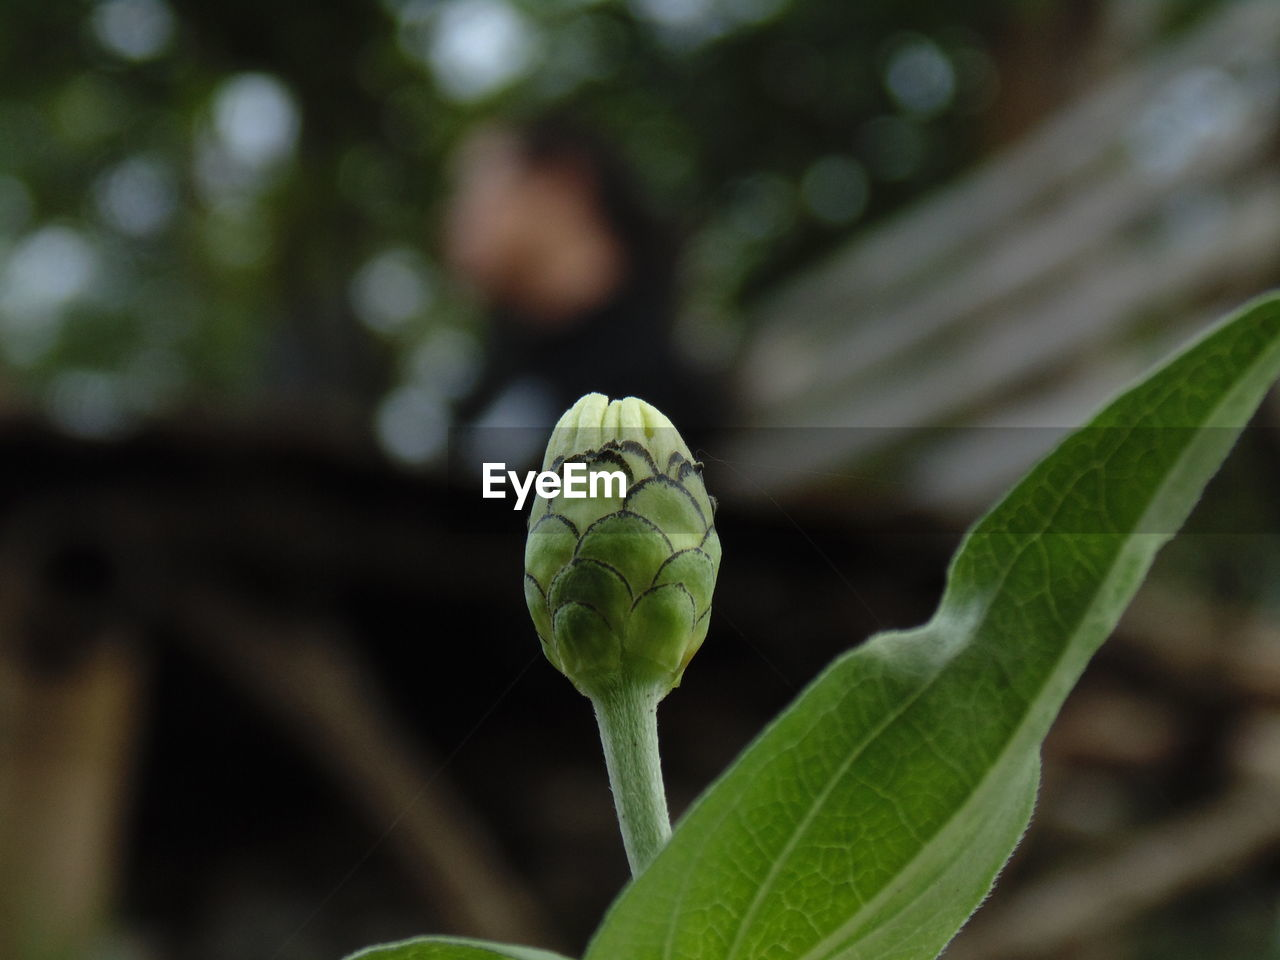 plant part, leaf, plant, growth, close-up, green color, focus on foreground, beauty in nature, day, nature, no people, freshness, outdoors, food, food and drink, bud, fragility, flower, selective focus, tree